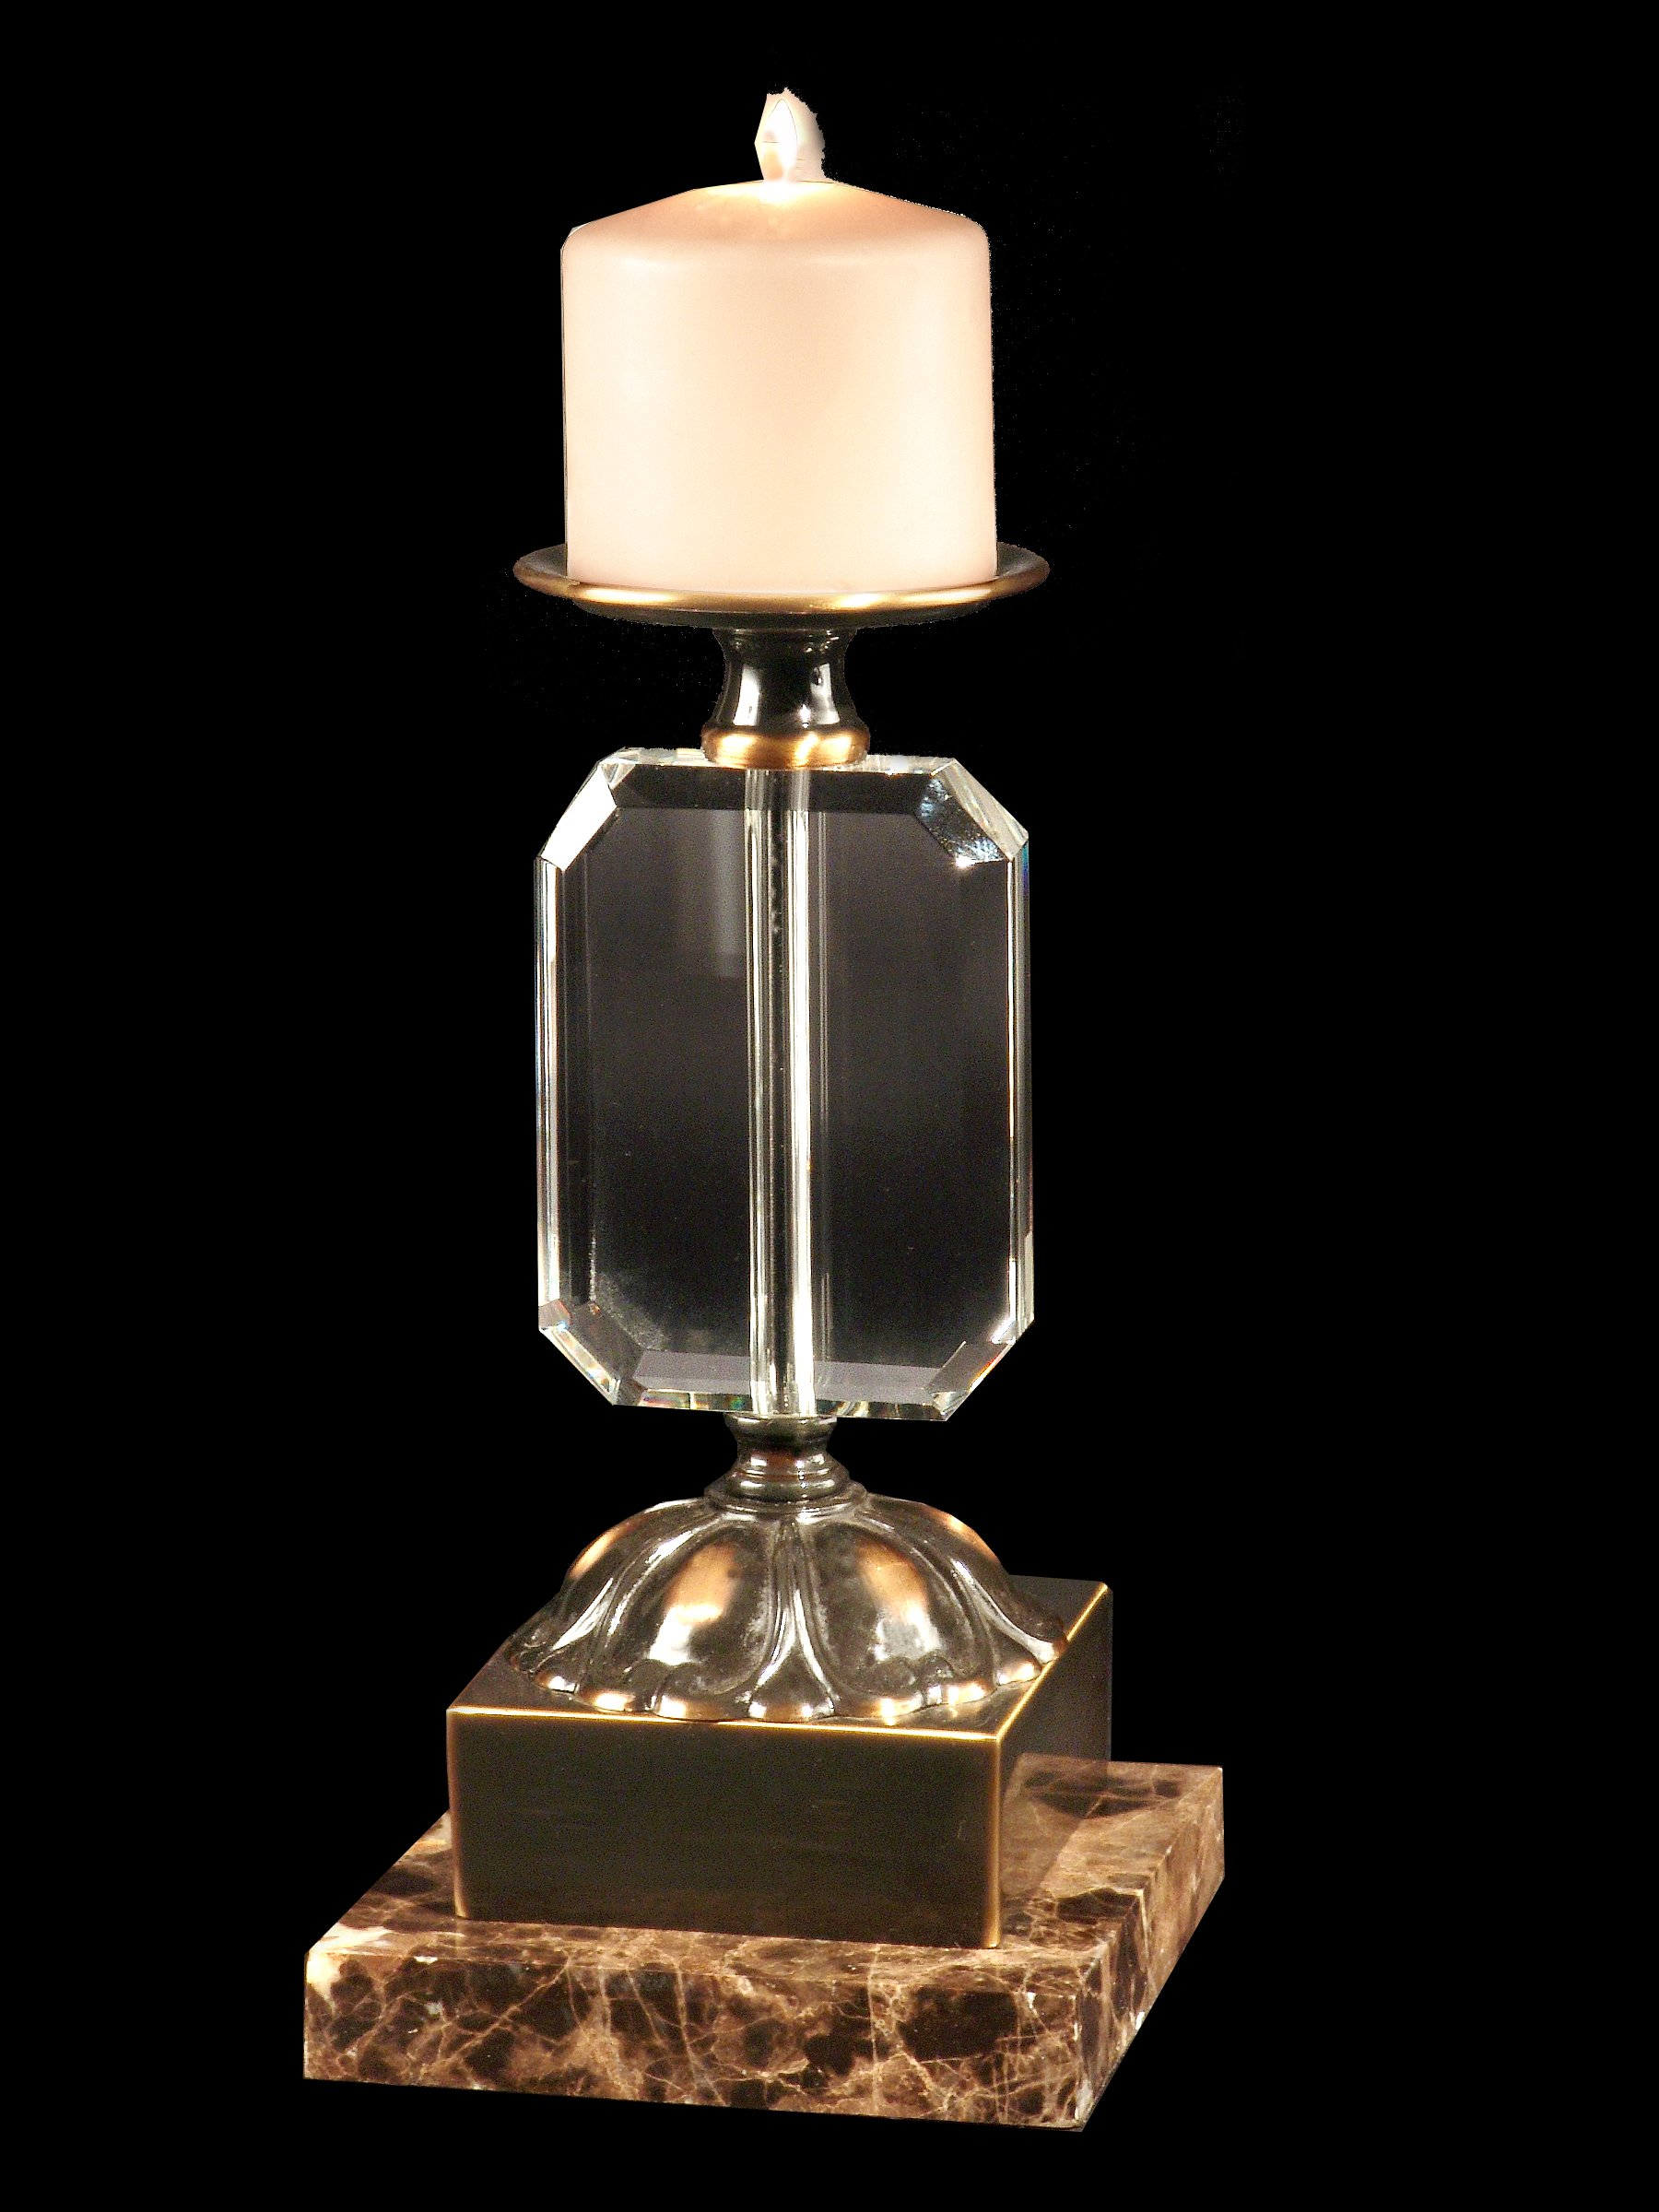 Dale Tiffany GA70067 Florence Decorative Candle Holder with Antique Brass Finish, 3-Inch by 10-1/2-Inch